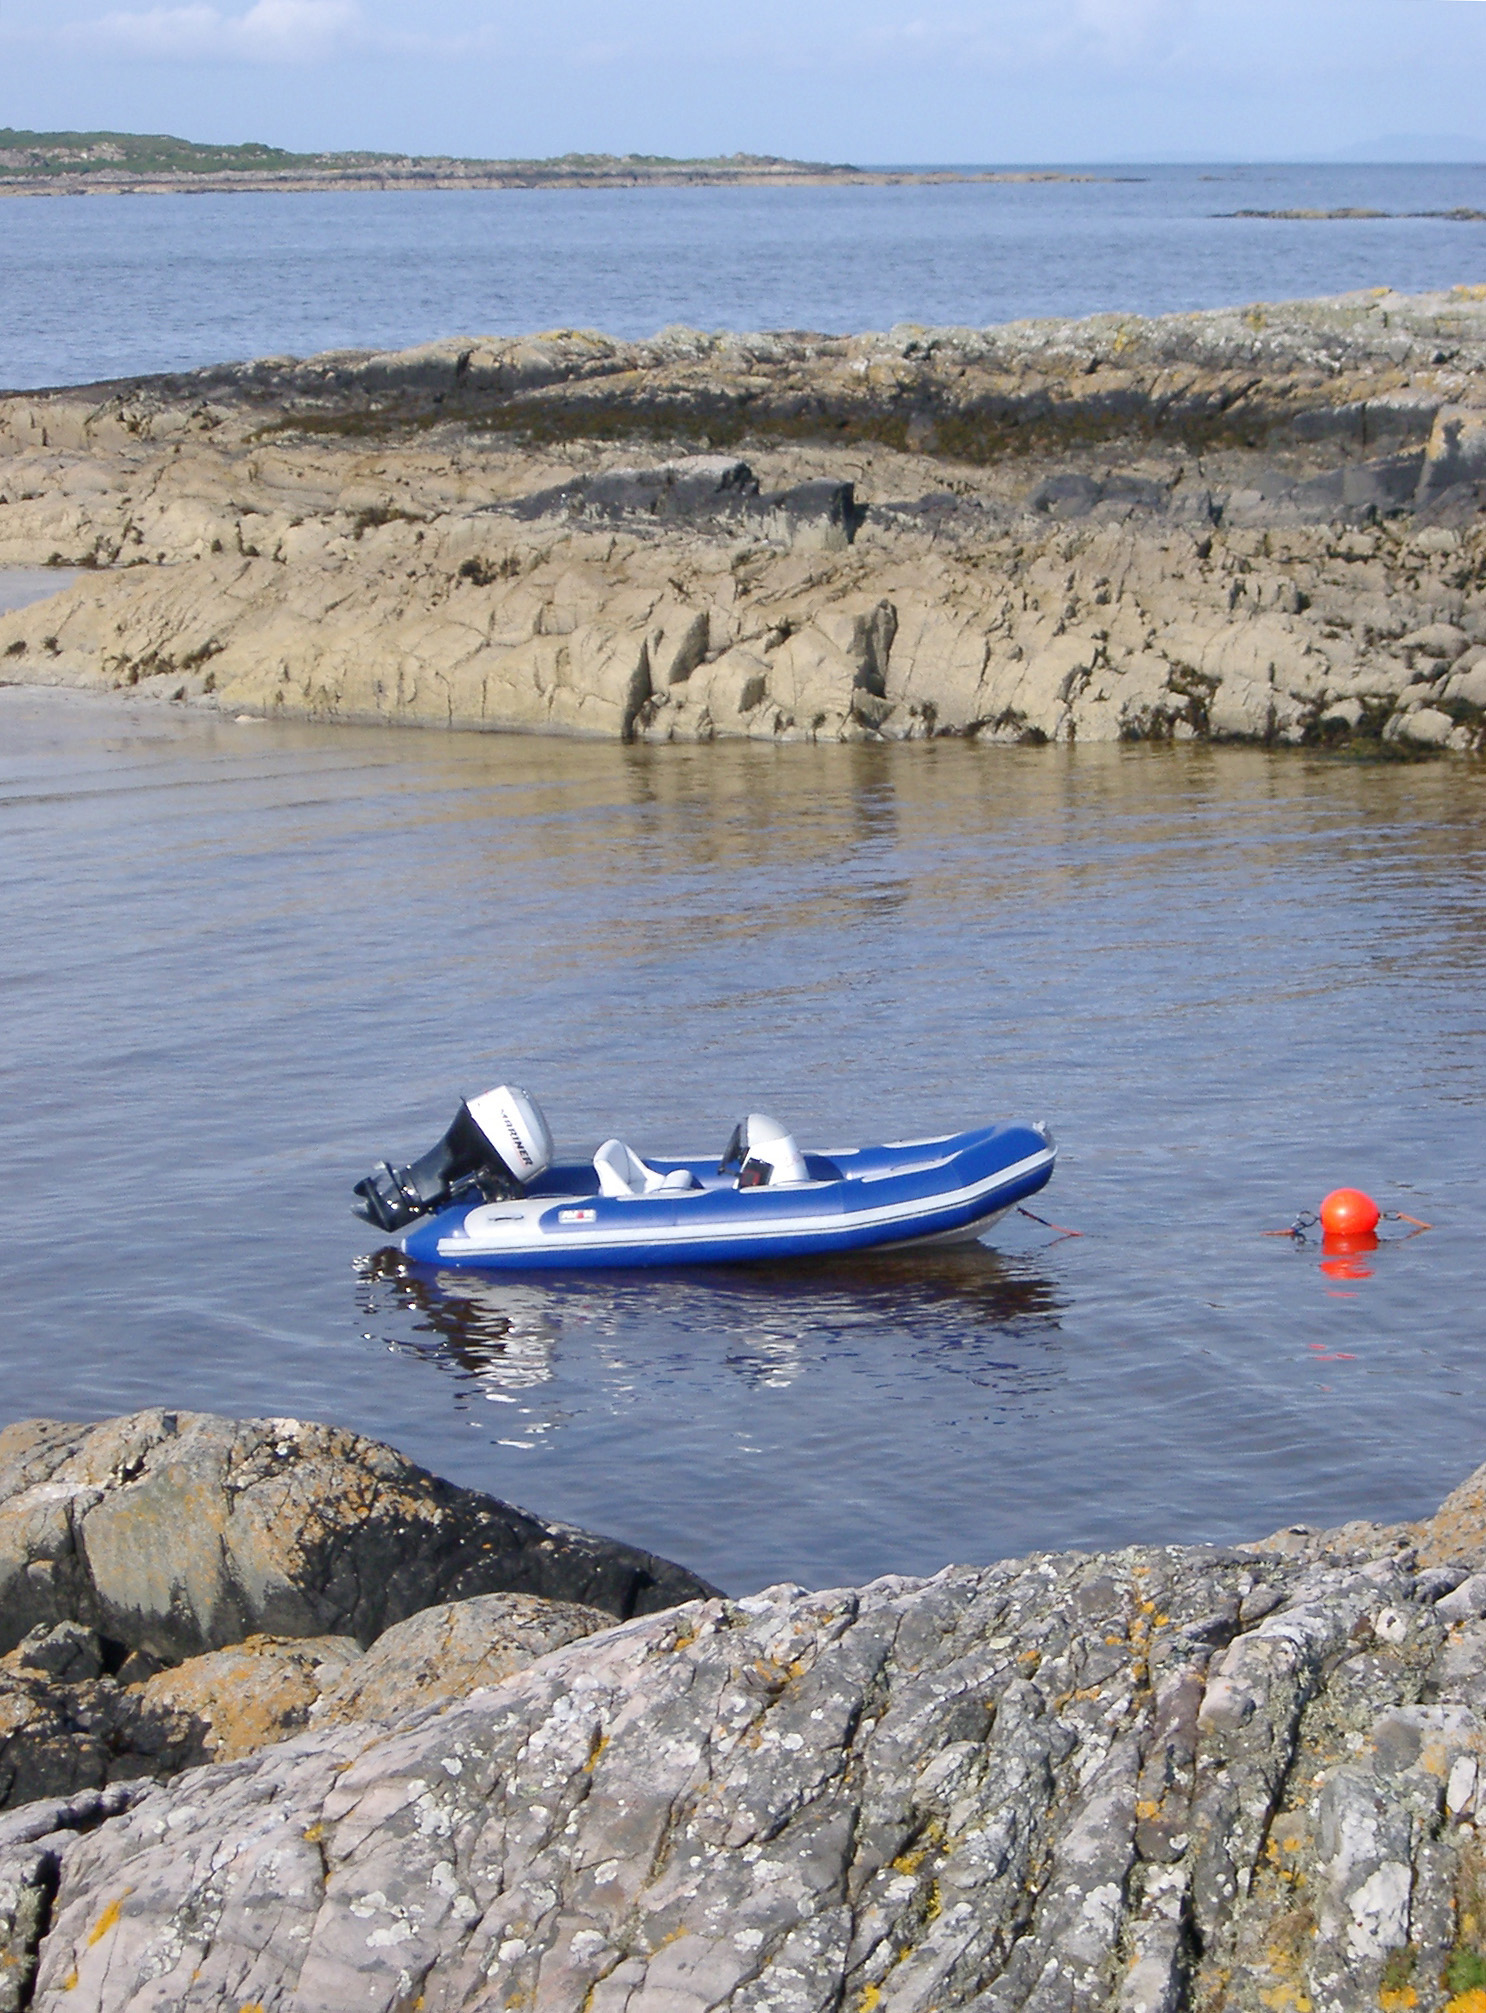 Rubber dinghy moored to a buoy in a coastal inlet between rock formations for fishing and water sport